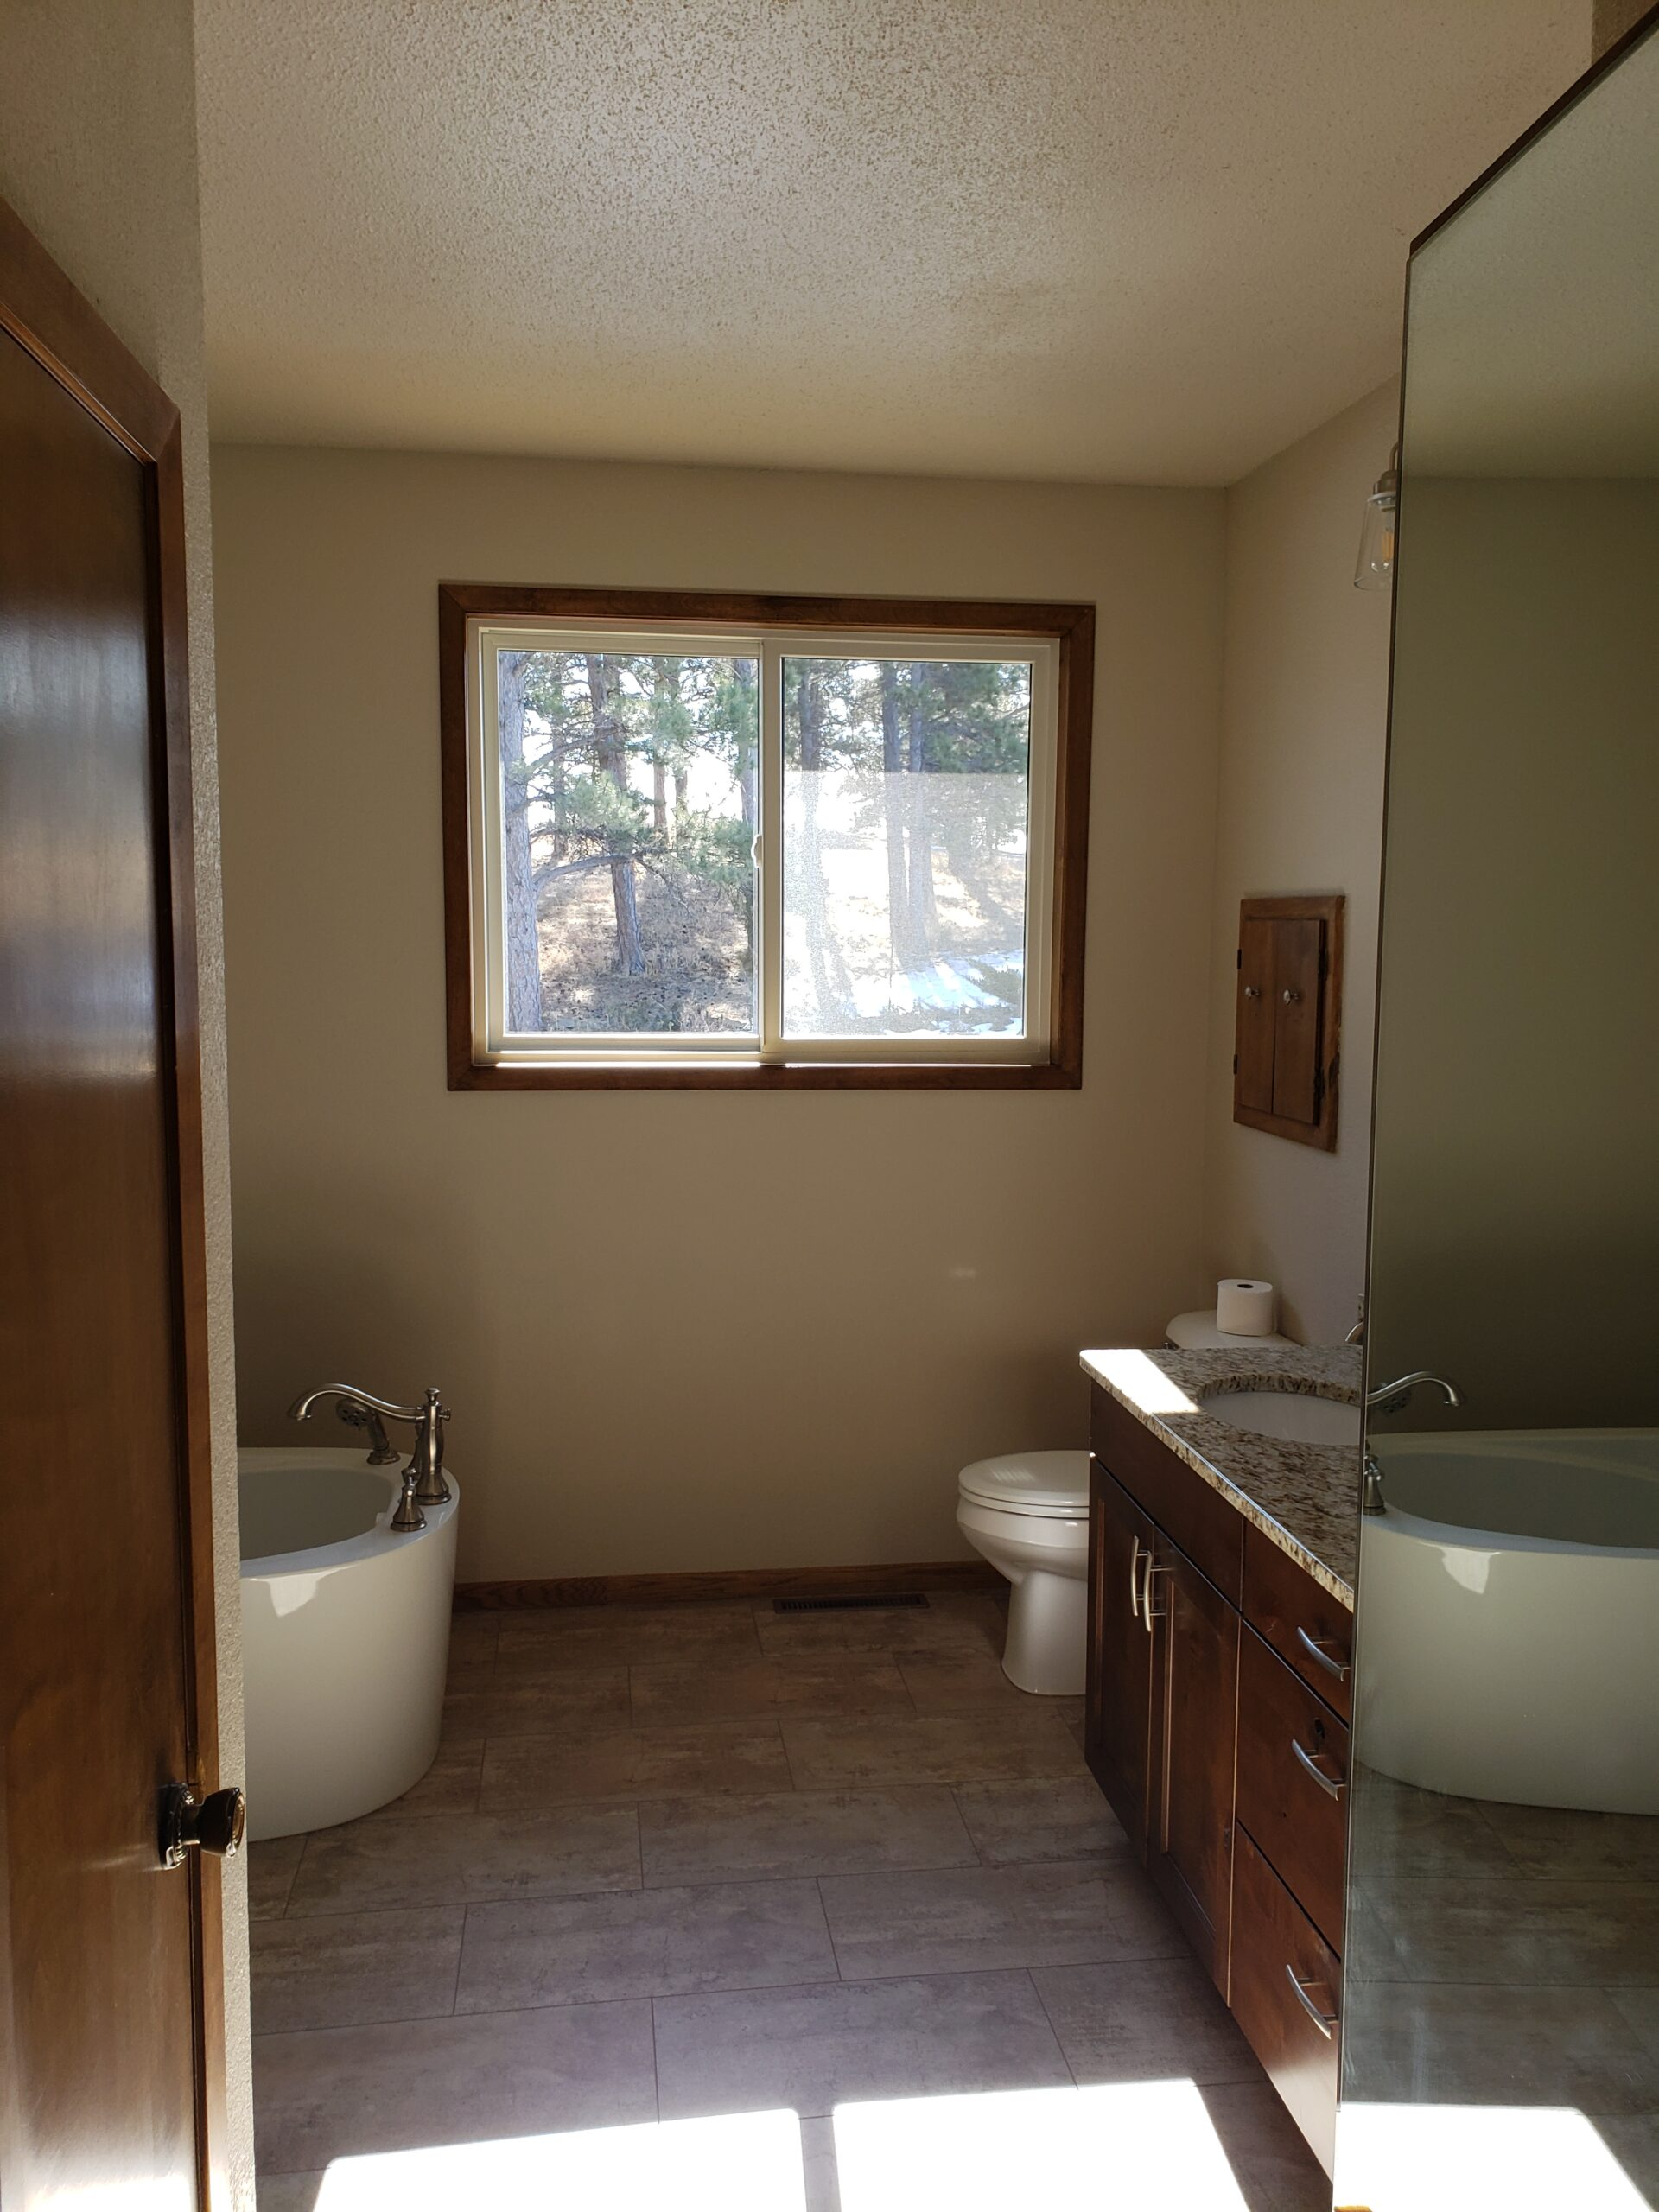 Bathroom remodel with new window